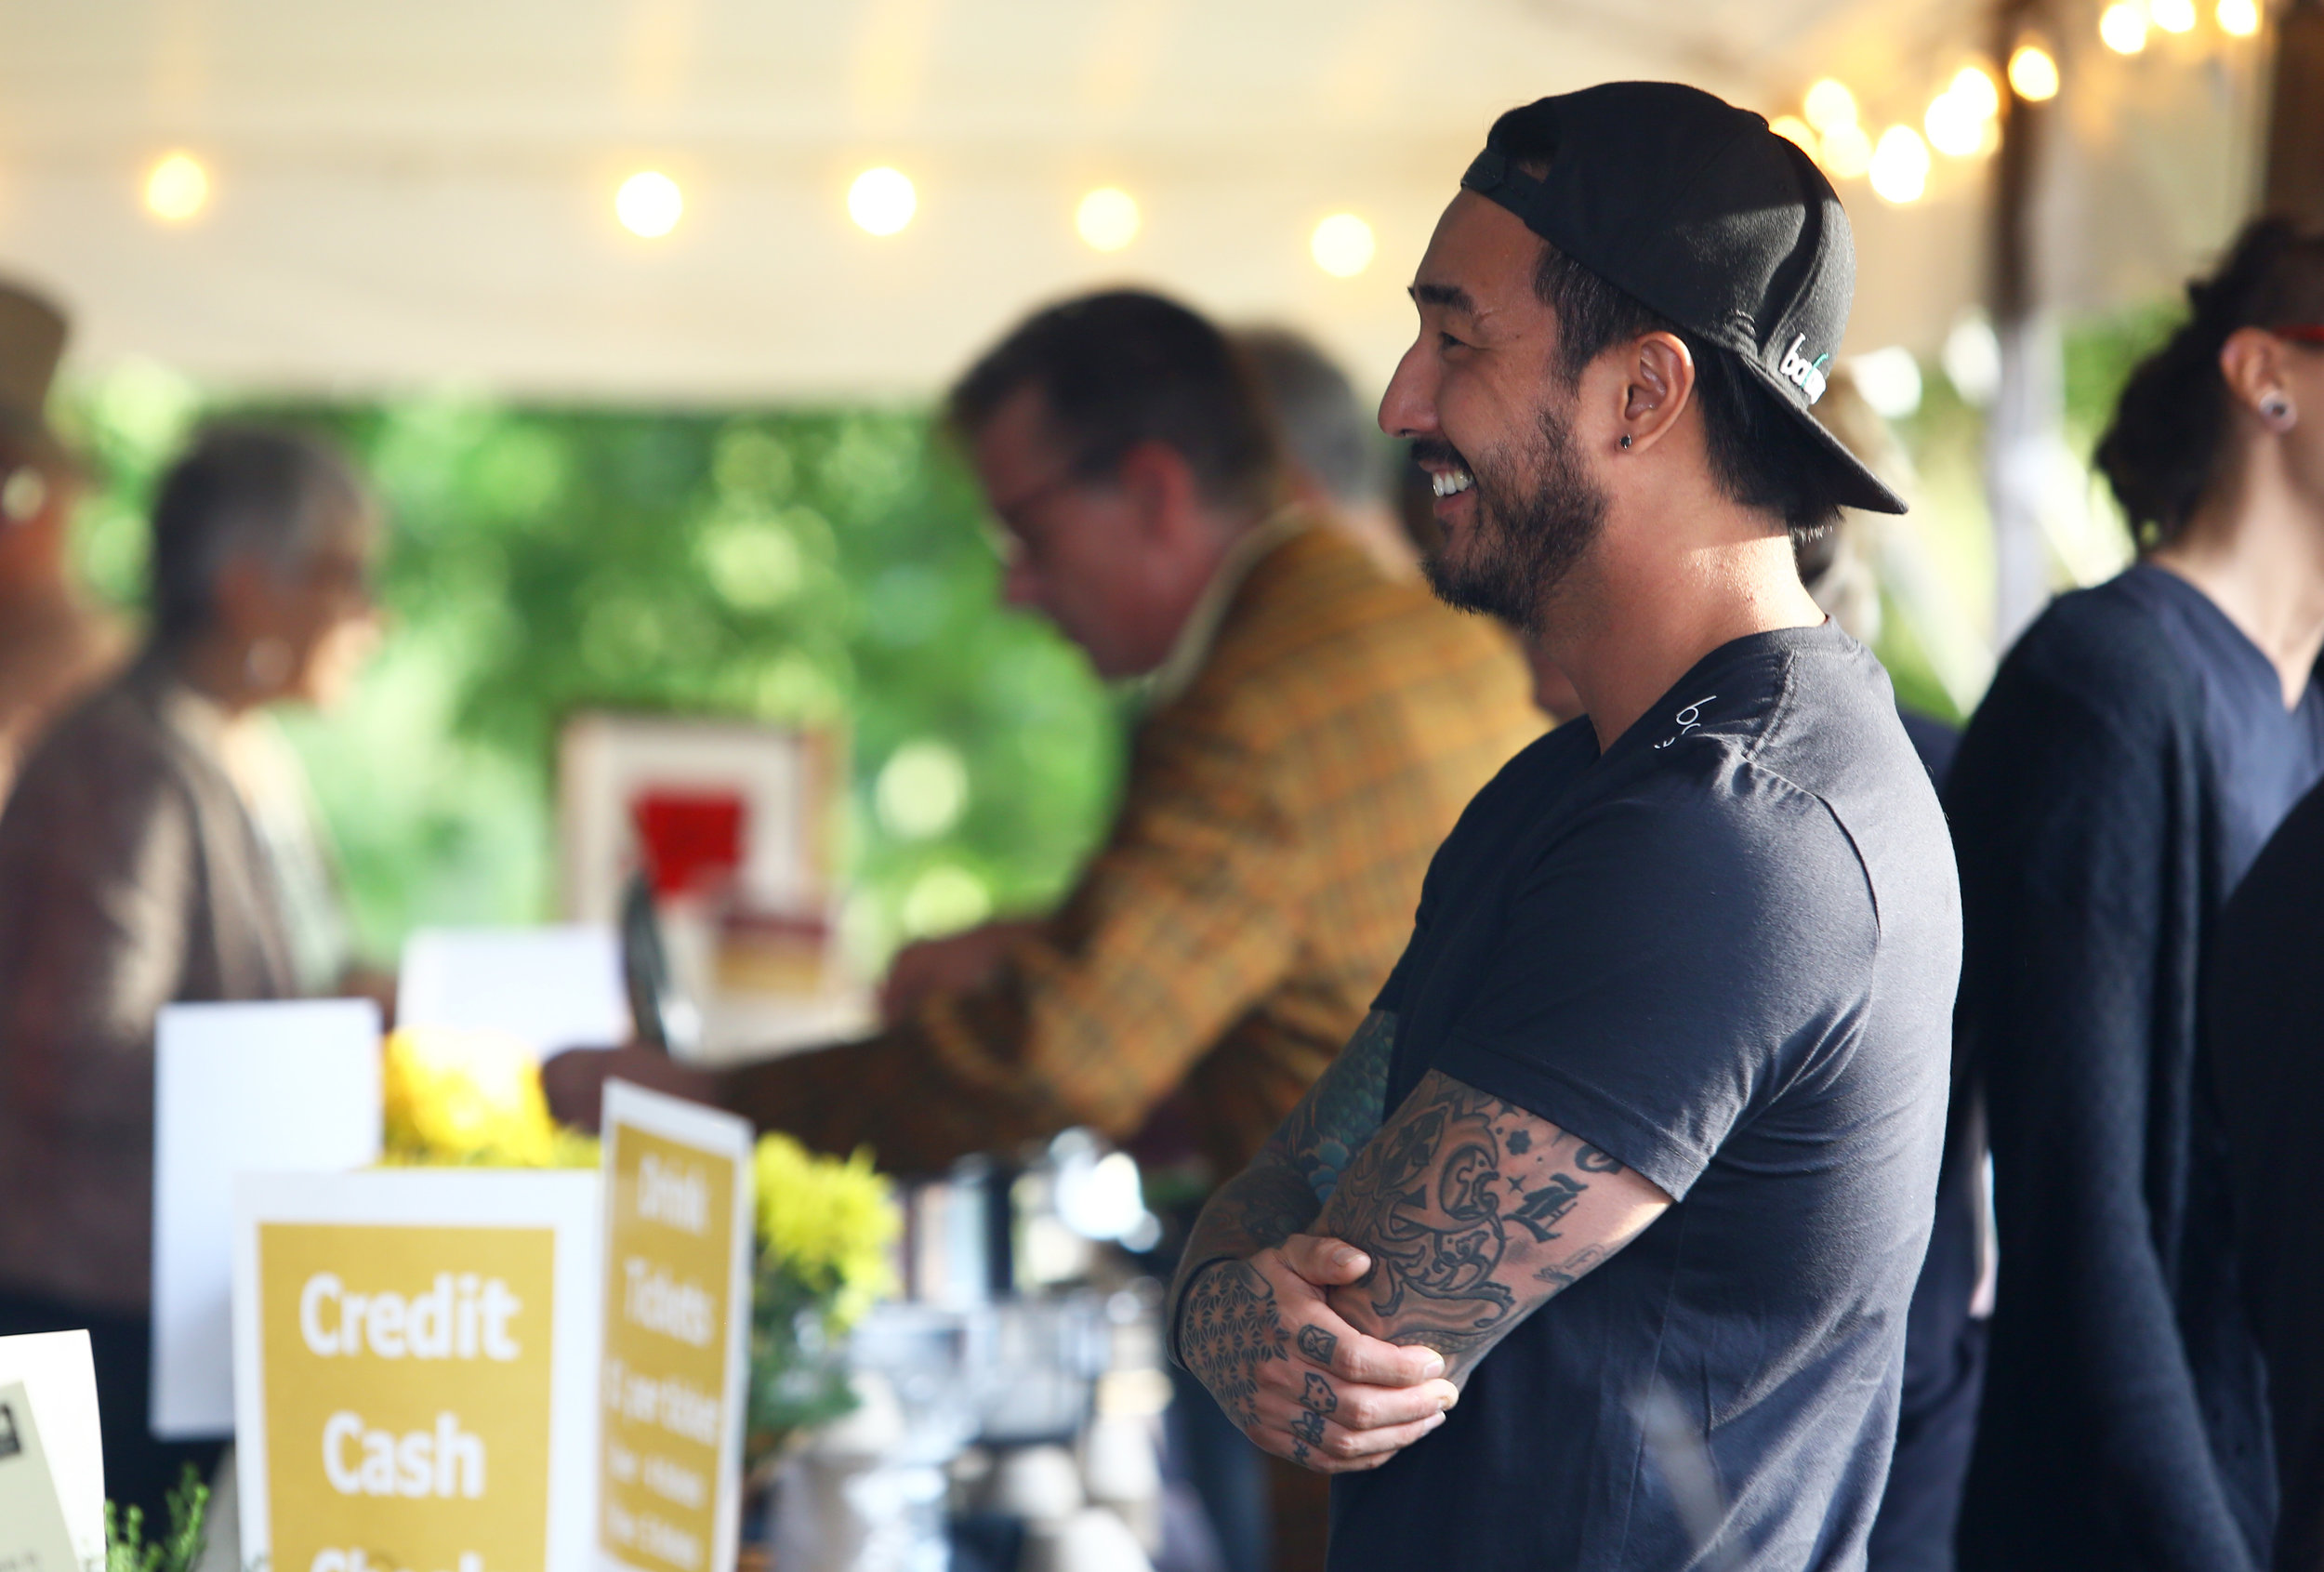 CJ Jang of Balance Grill smiles as he jokes with coworkers during the Toledo Grows Harvest Market Dinner held at the Toledo Botanical Gardens on Thursday, Sept. 15, 2016.